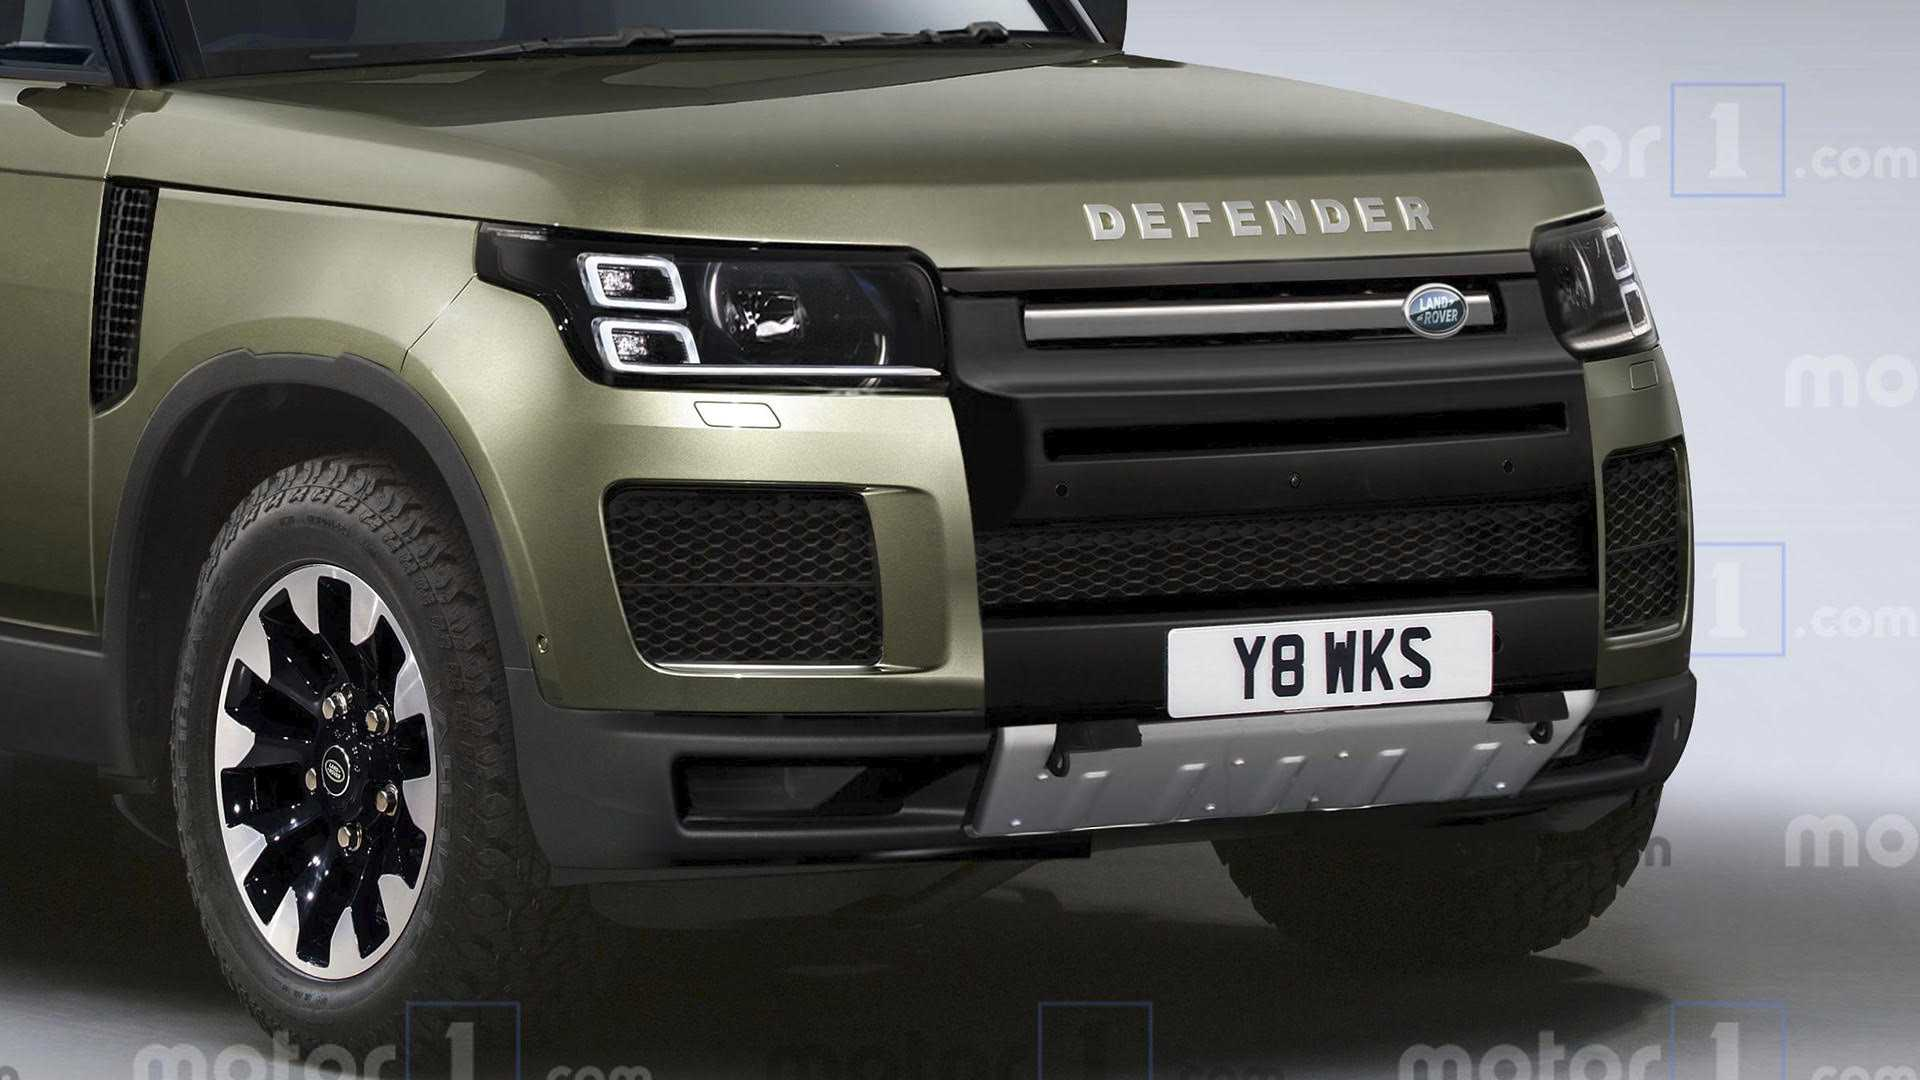 65 The Best 2020 Land Rover Defender Photos